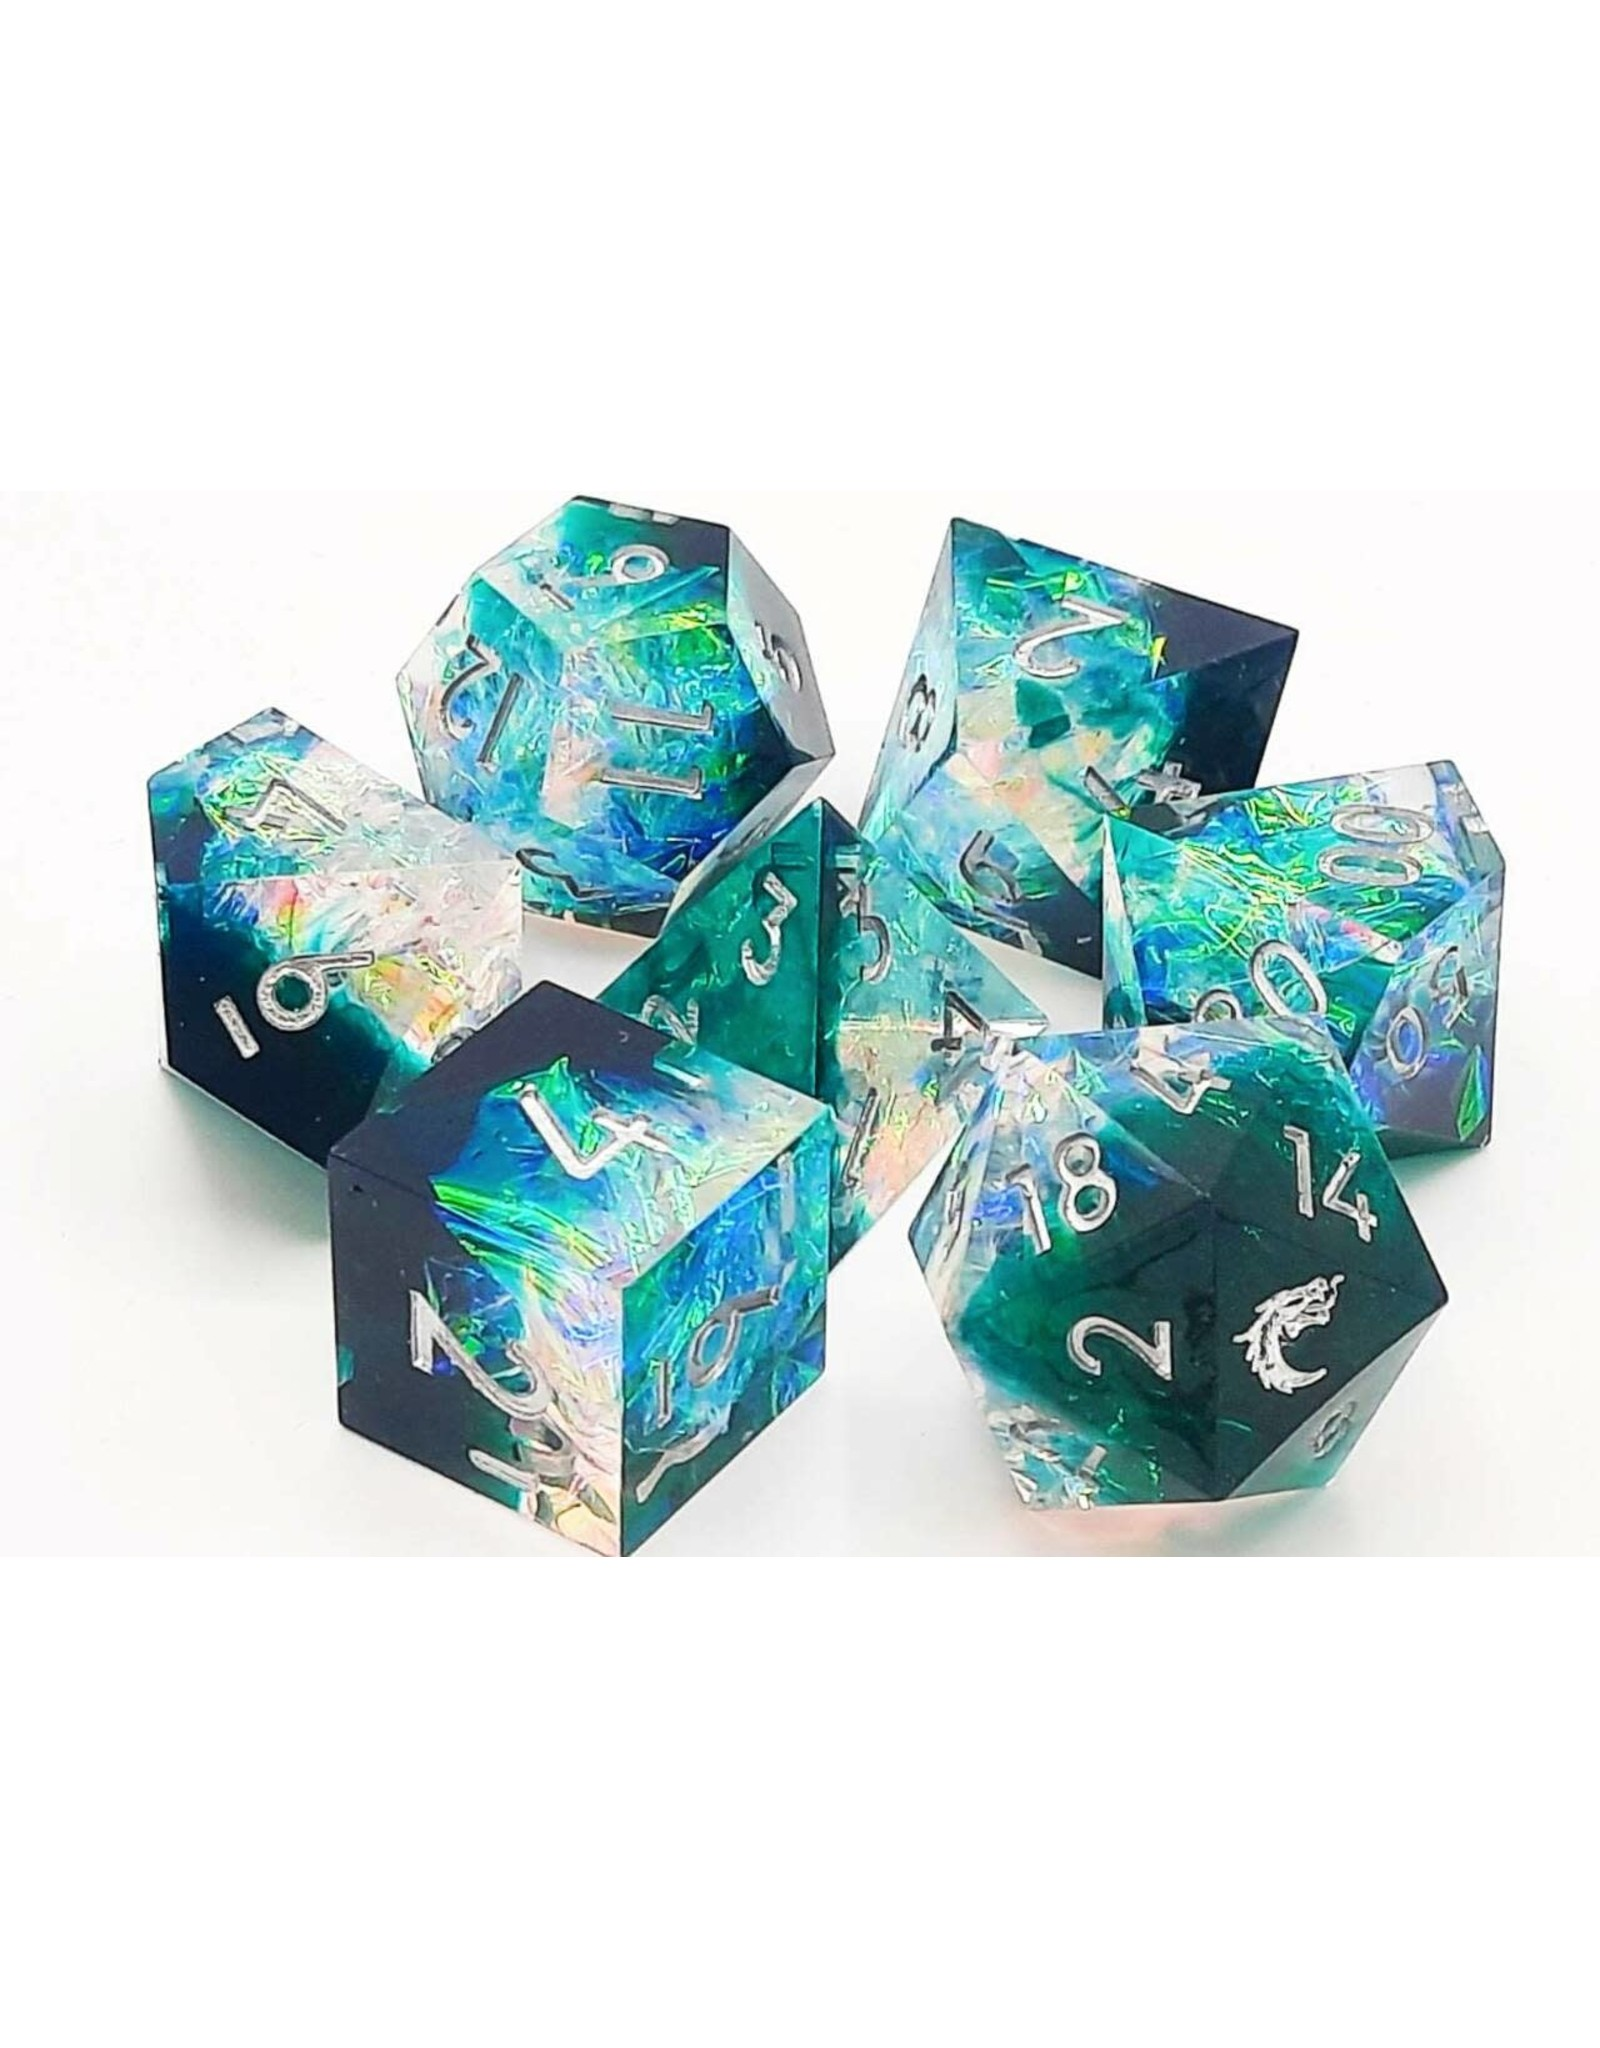 Old School Dice 7 Piece DnD RPG Dice Set: Sharp Edged - Emerald Forest